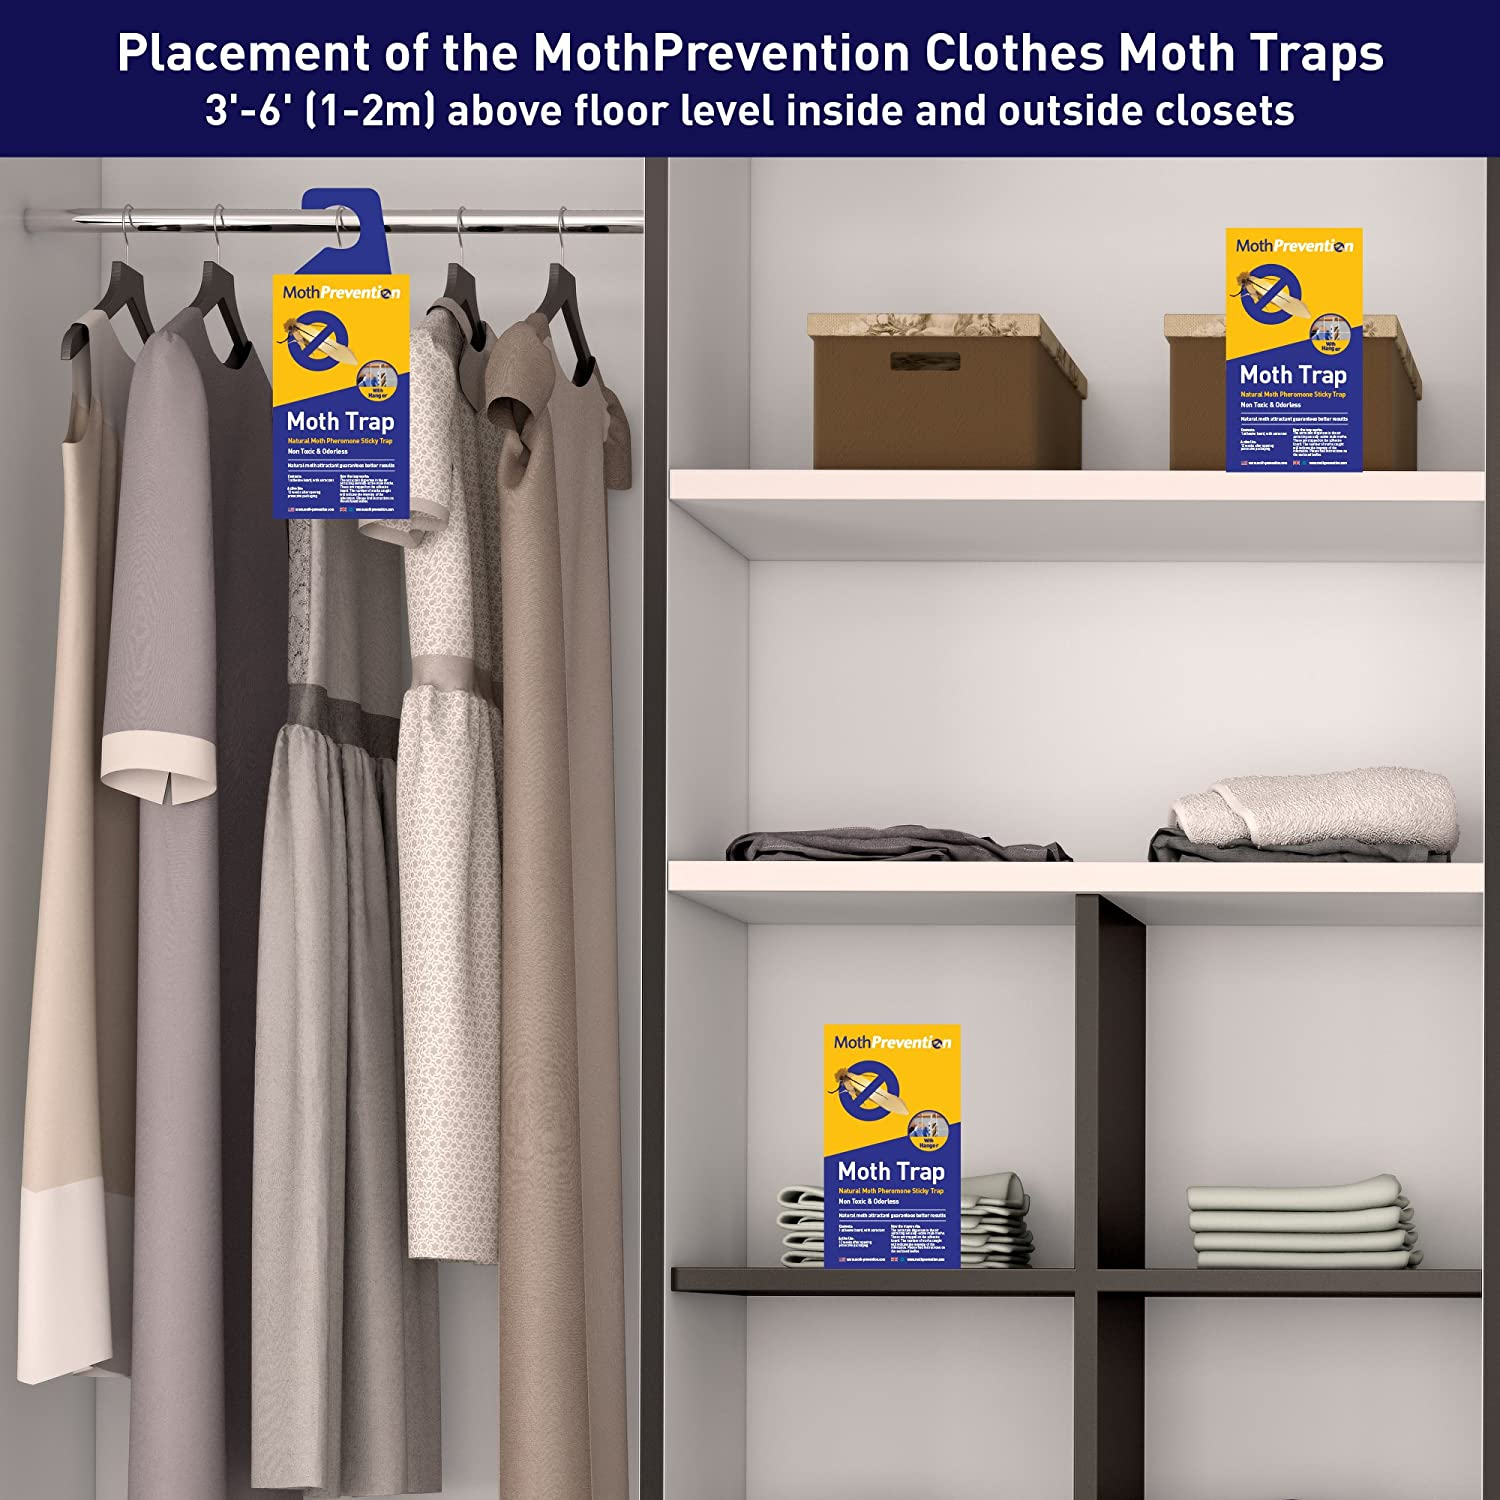 MothPrevention Clothes Moth Killer Kit Including Clothes Moth Traps and 6 Months Protection for Closet Clothing! Professional Grade